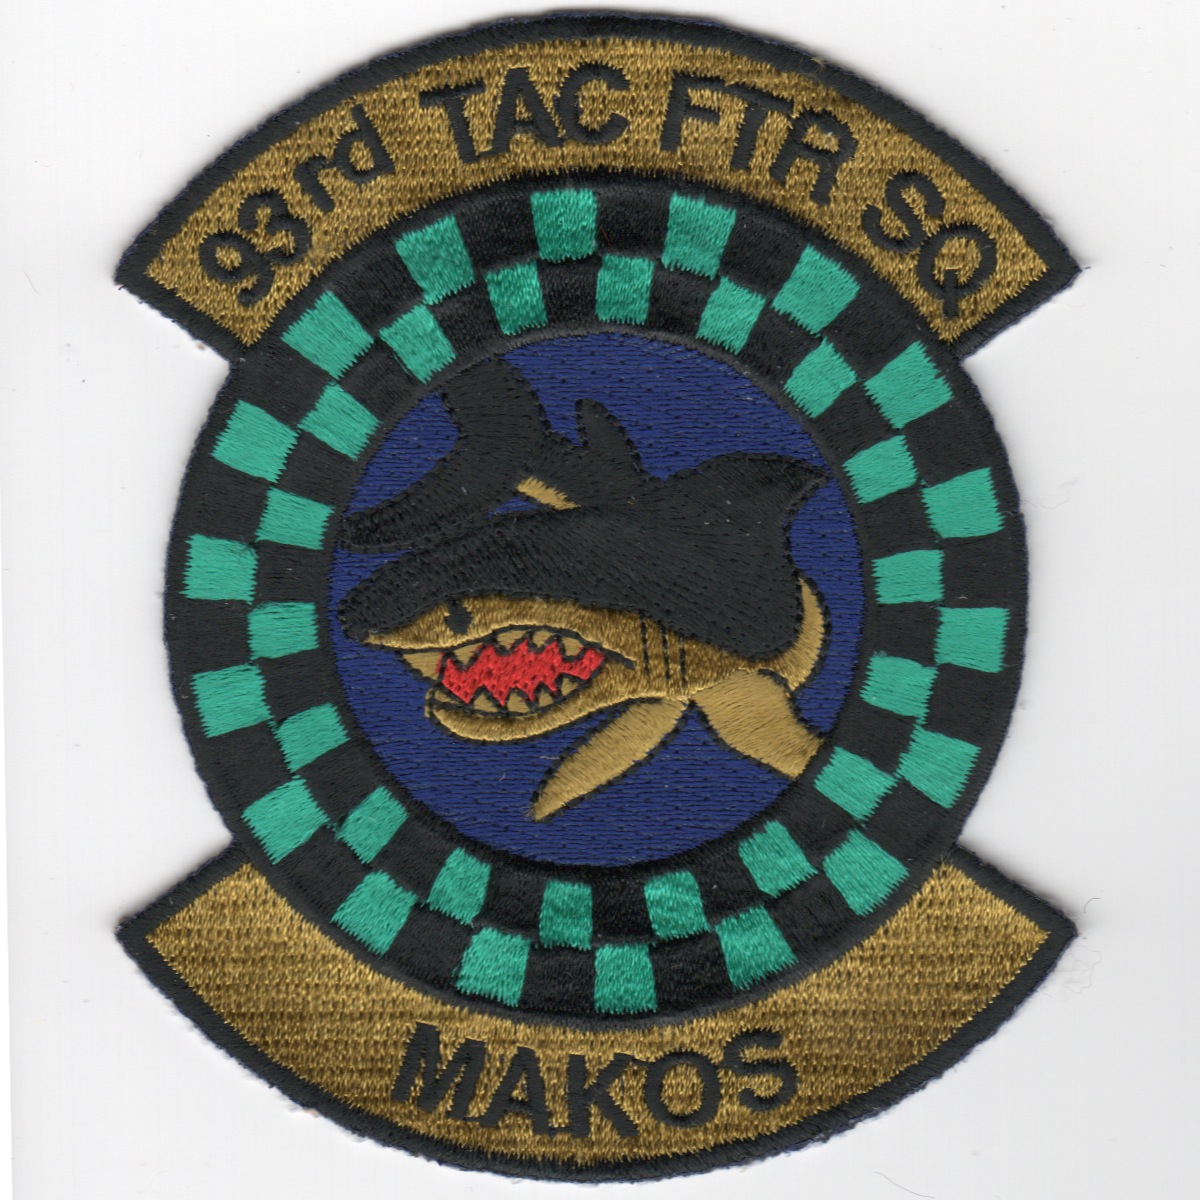 93d TFS 'Makos' Historical Patch (Subdued)